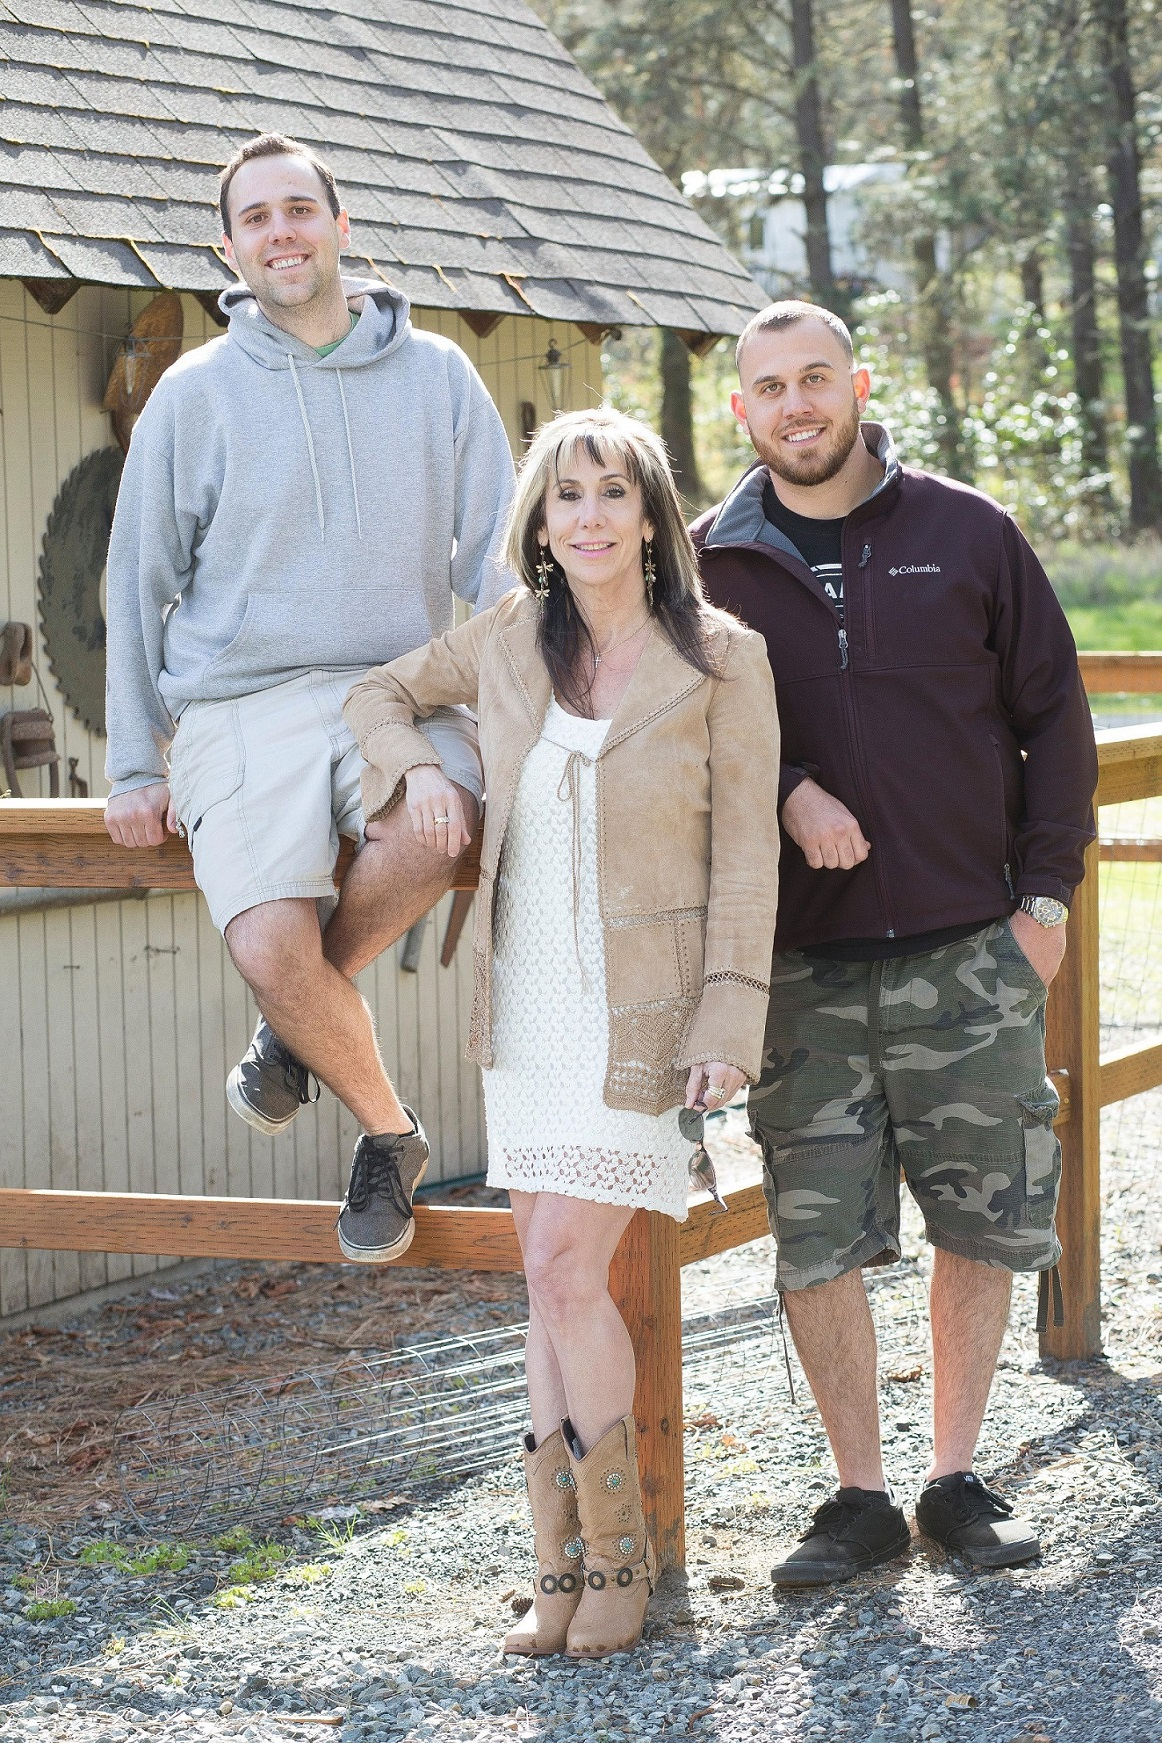 EXCLUSIVE: Meghan Markle's  nephew Tyler Dooley is a Cannabis farmer who is planning a new drug called Markle's Sparkle.  25 year old Tyler  is too busy growing Millions of Dollars worth of the sticky icky at his greenhouse in Oregon to worry about the big